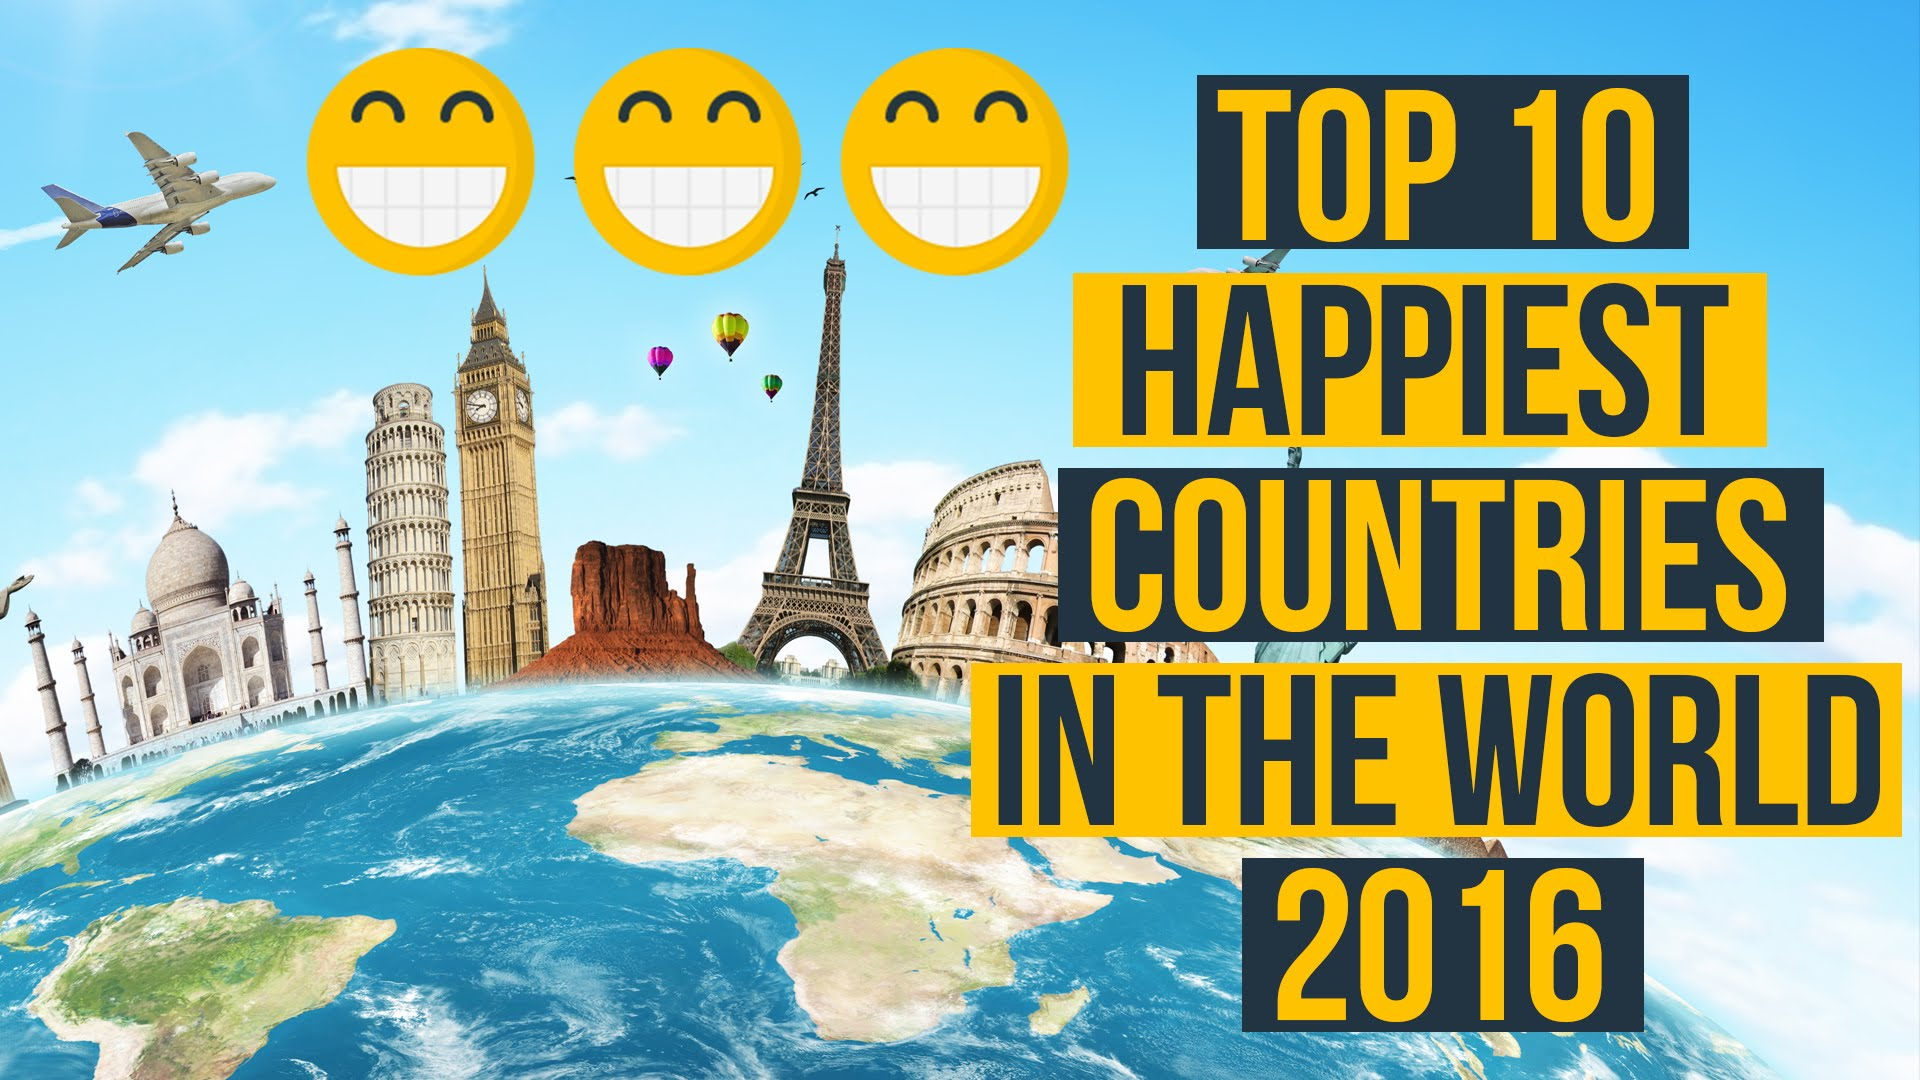 Happiest Countries In The World